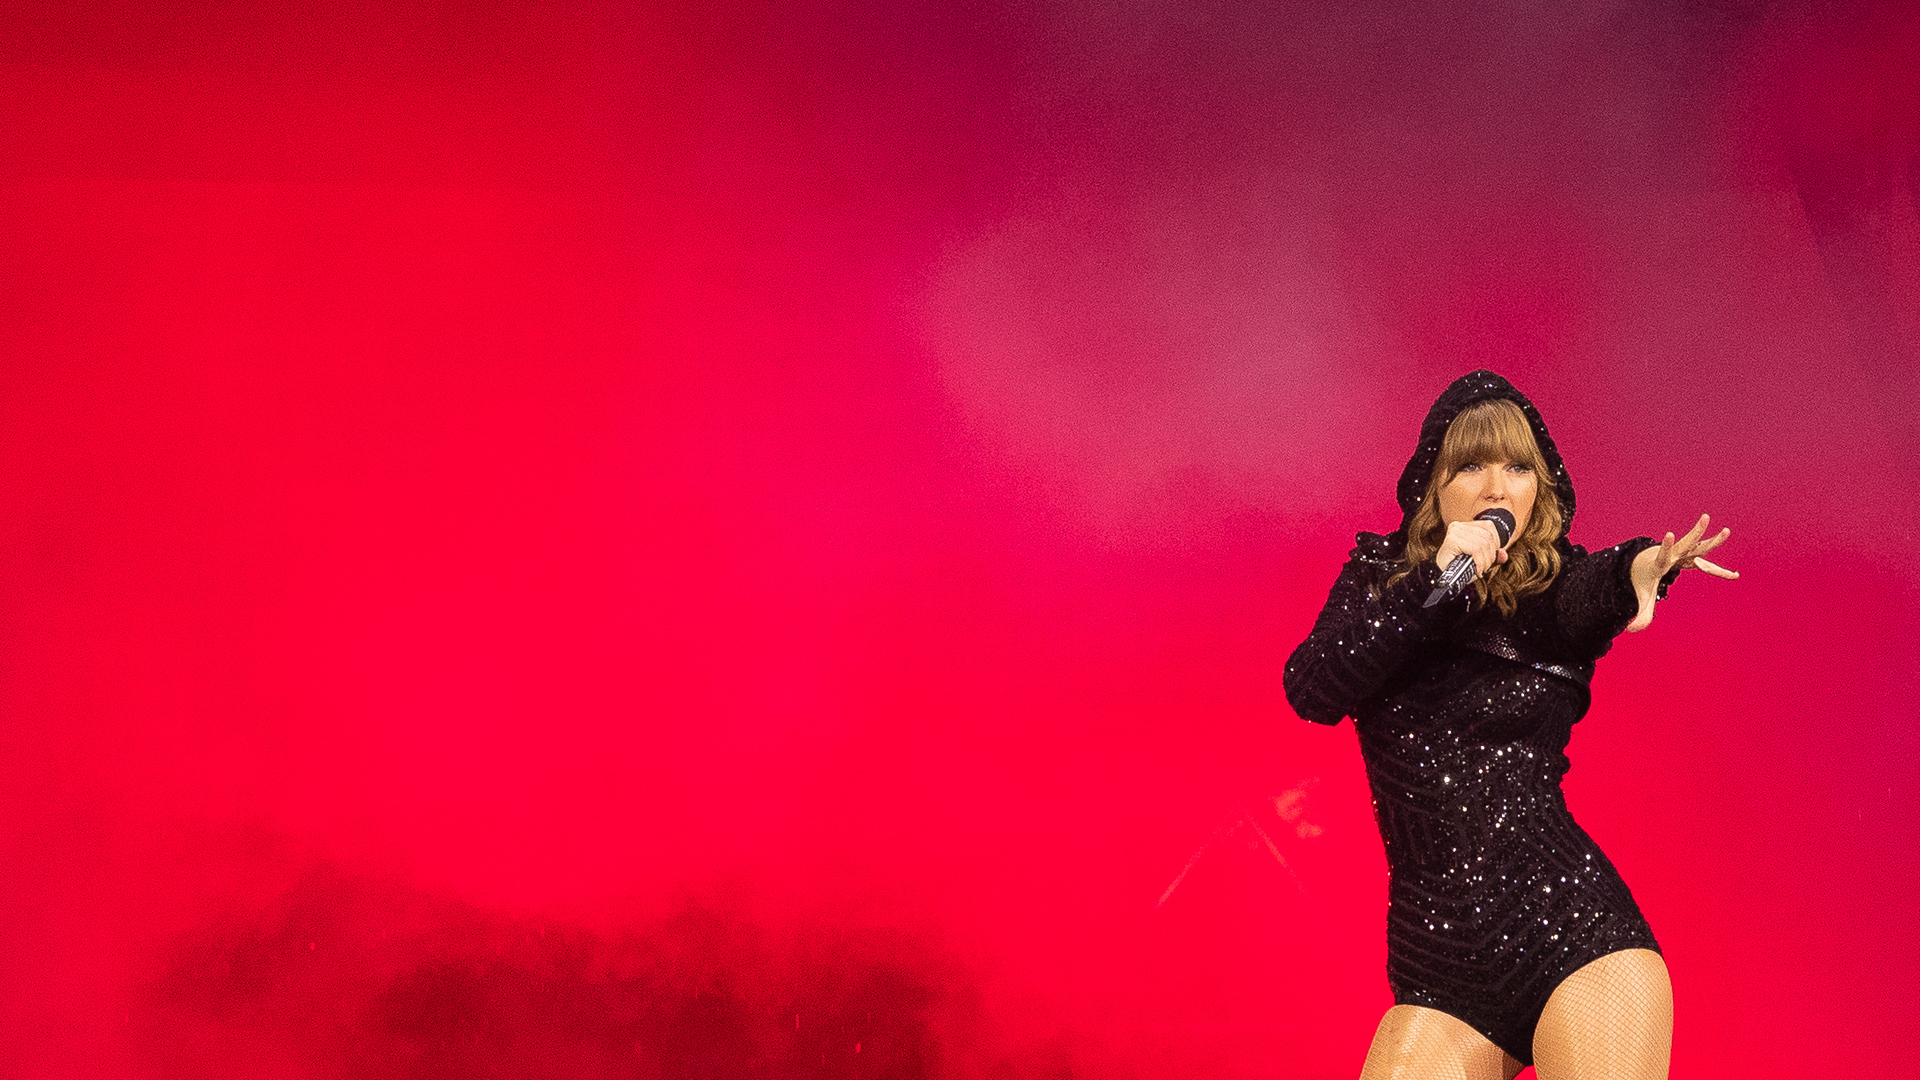 Taylor Swift performs at ANZ Stadium in Sydney, Australia, on Nov. 2, 2018. (Credit: Mark Metcalfe / Getty Images)